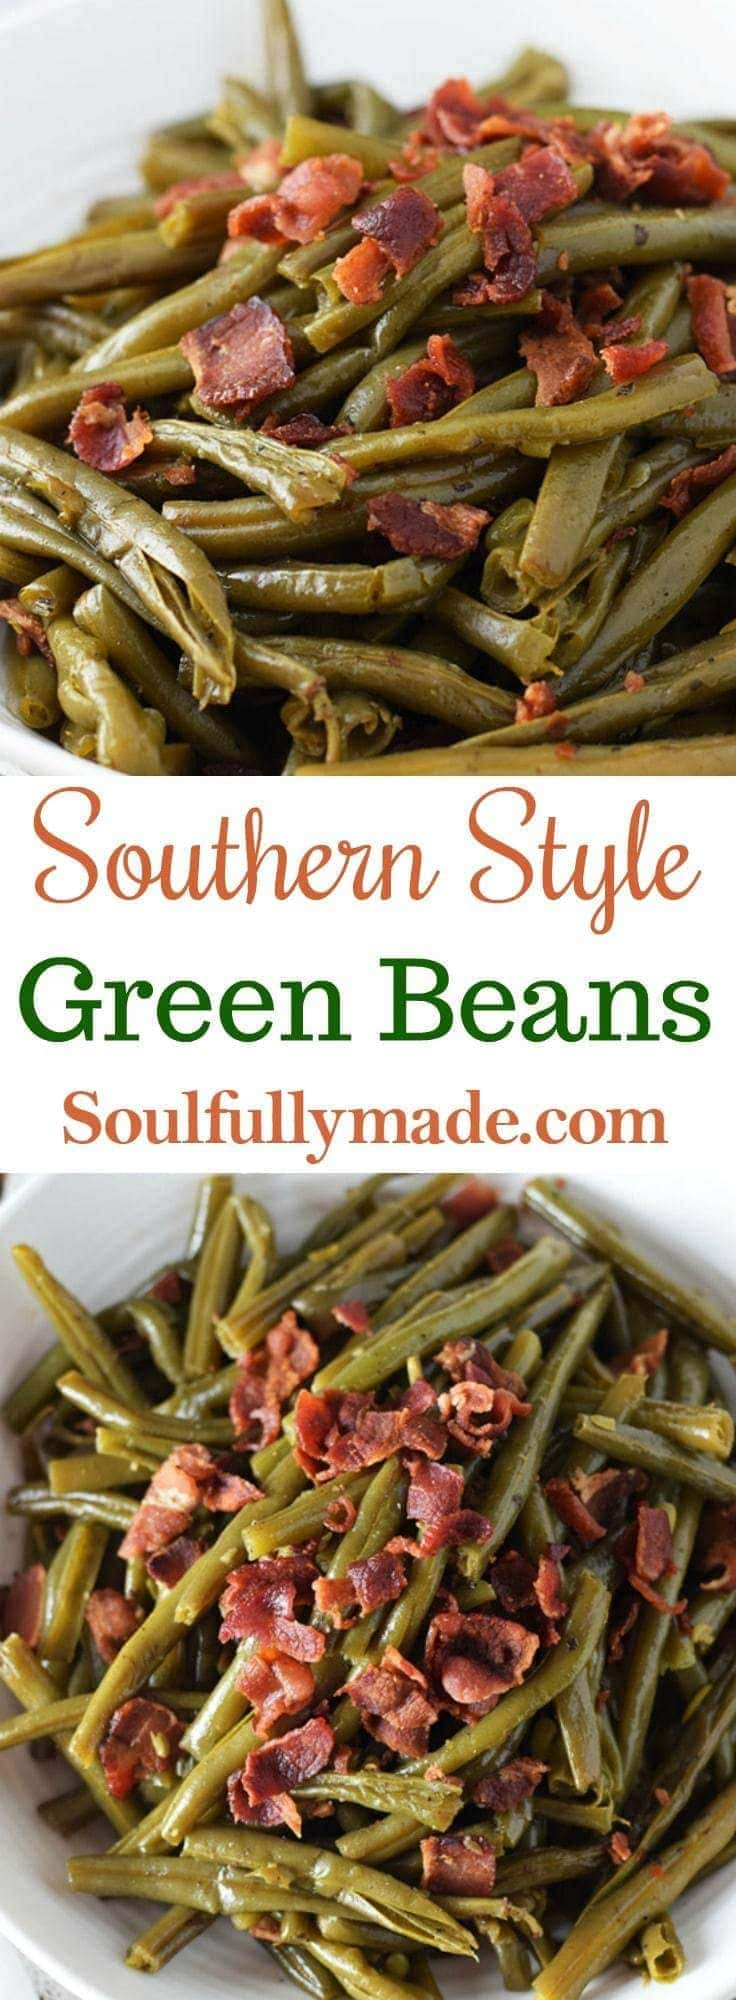 Southern Style Green Beans with Crumbles of Bacon on Top